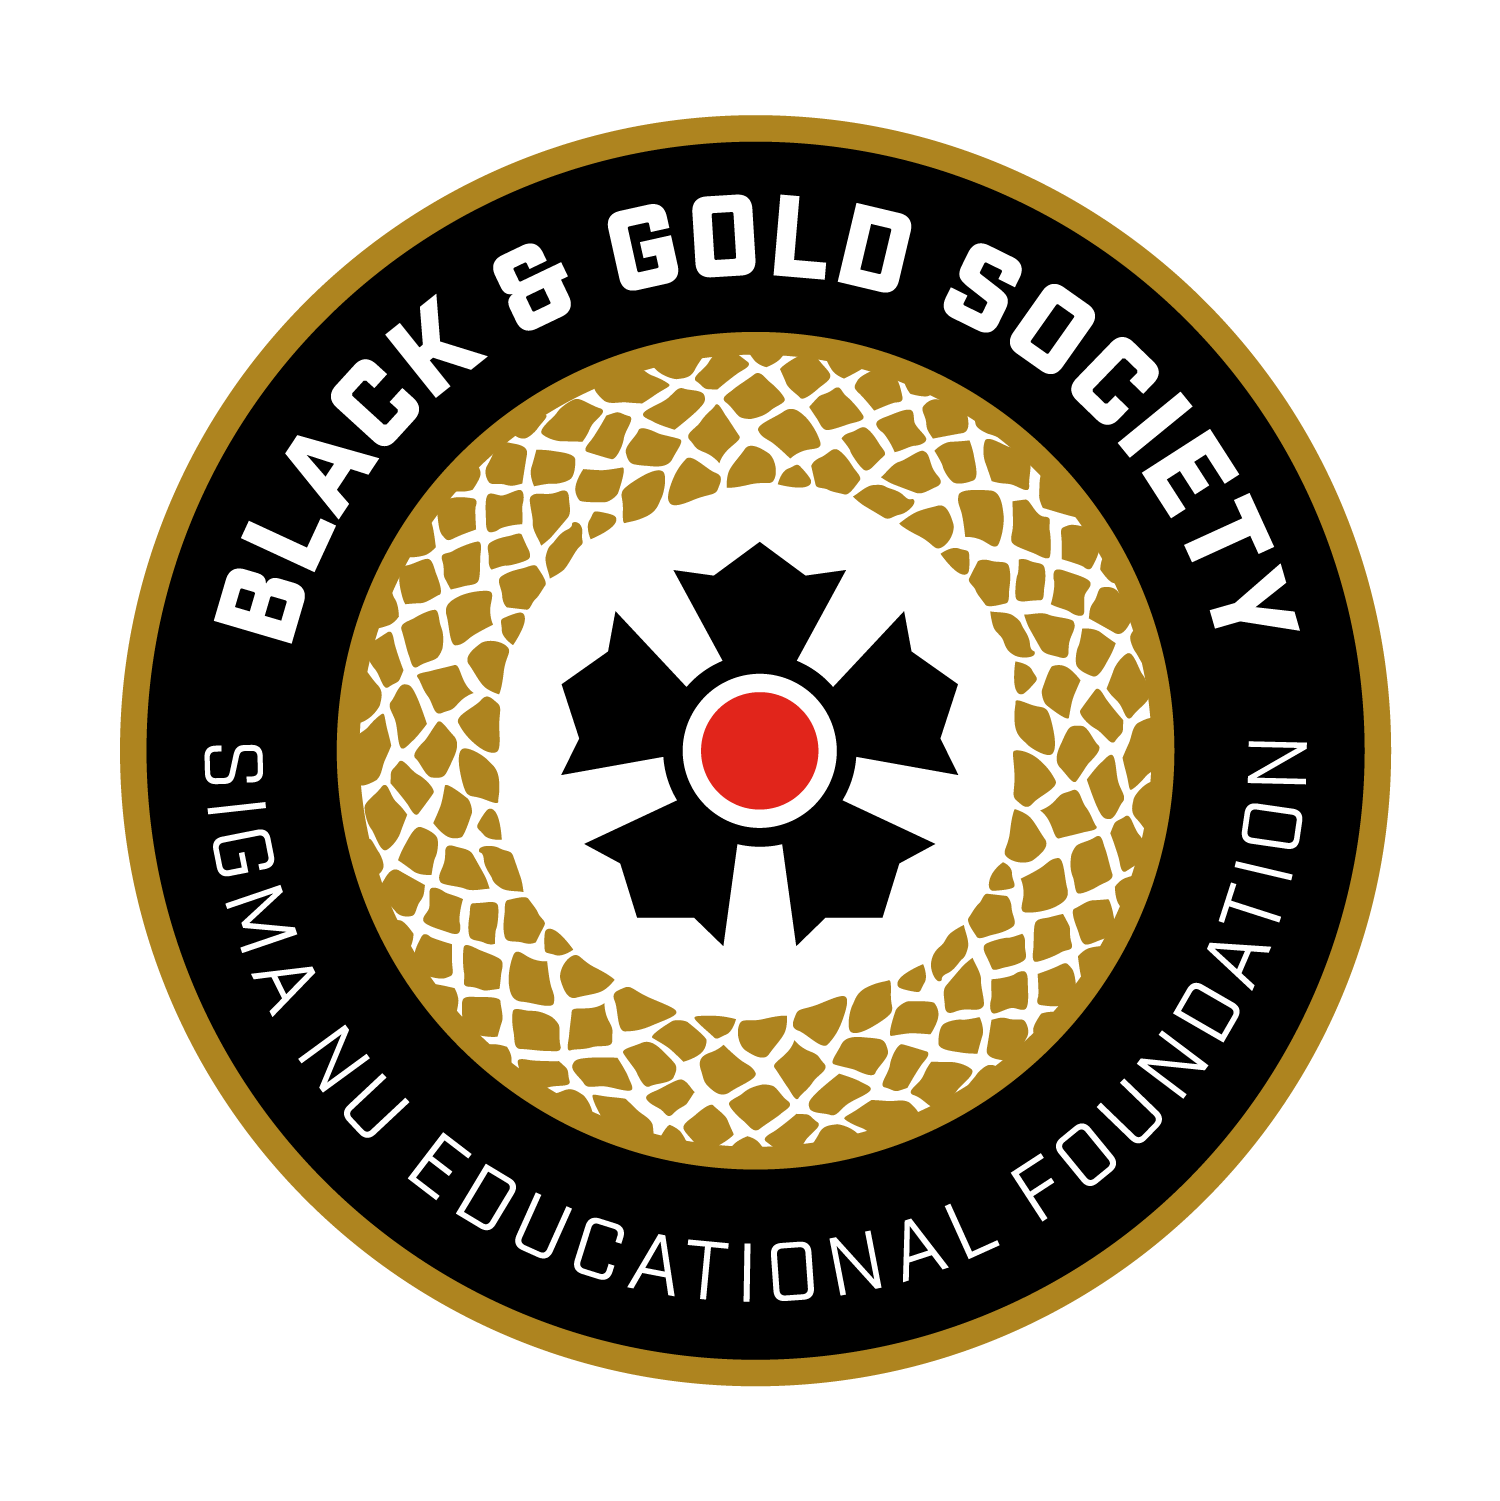 Black and Gold Society Logo - Circle